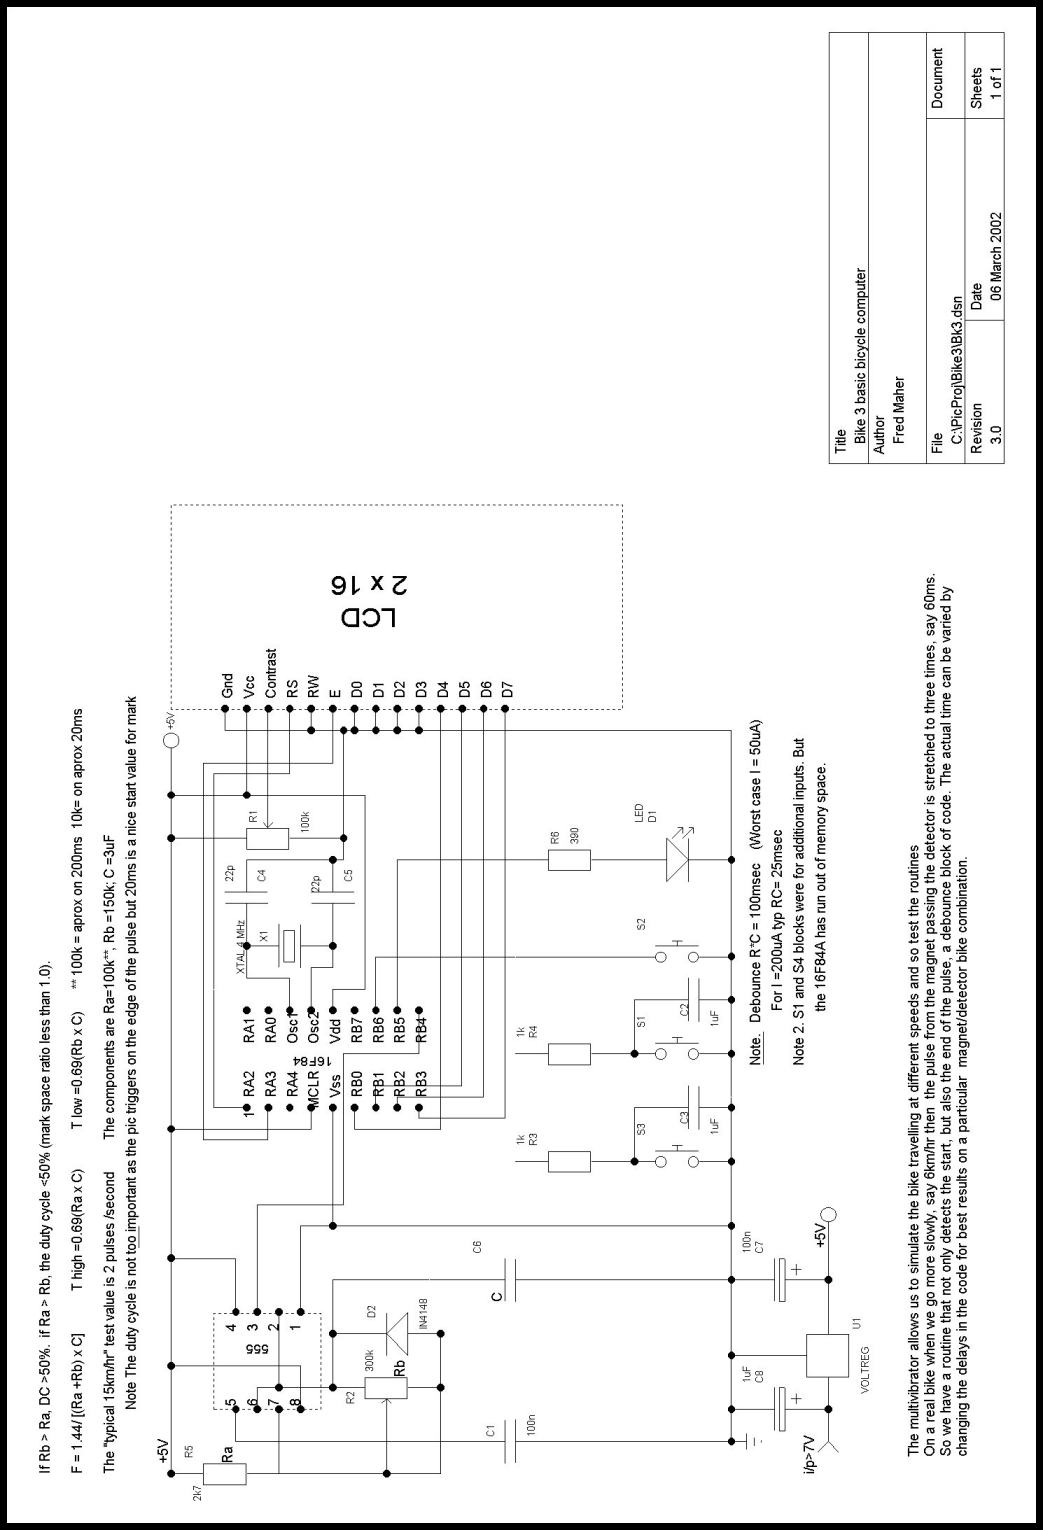 Simple Bike Computer Tutorial Electric Circuit Diagram Of The Electrical Fig 5 Theoretical Dev System